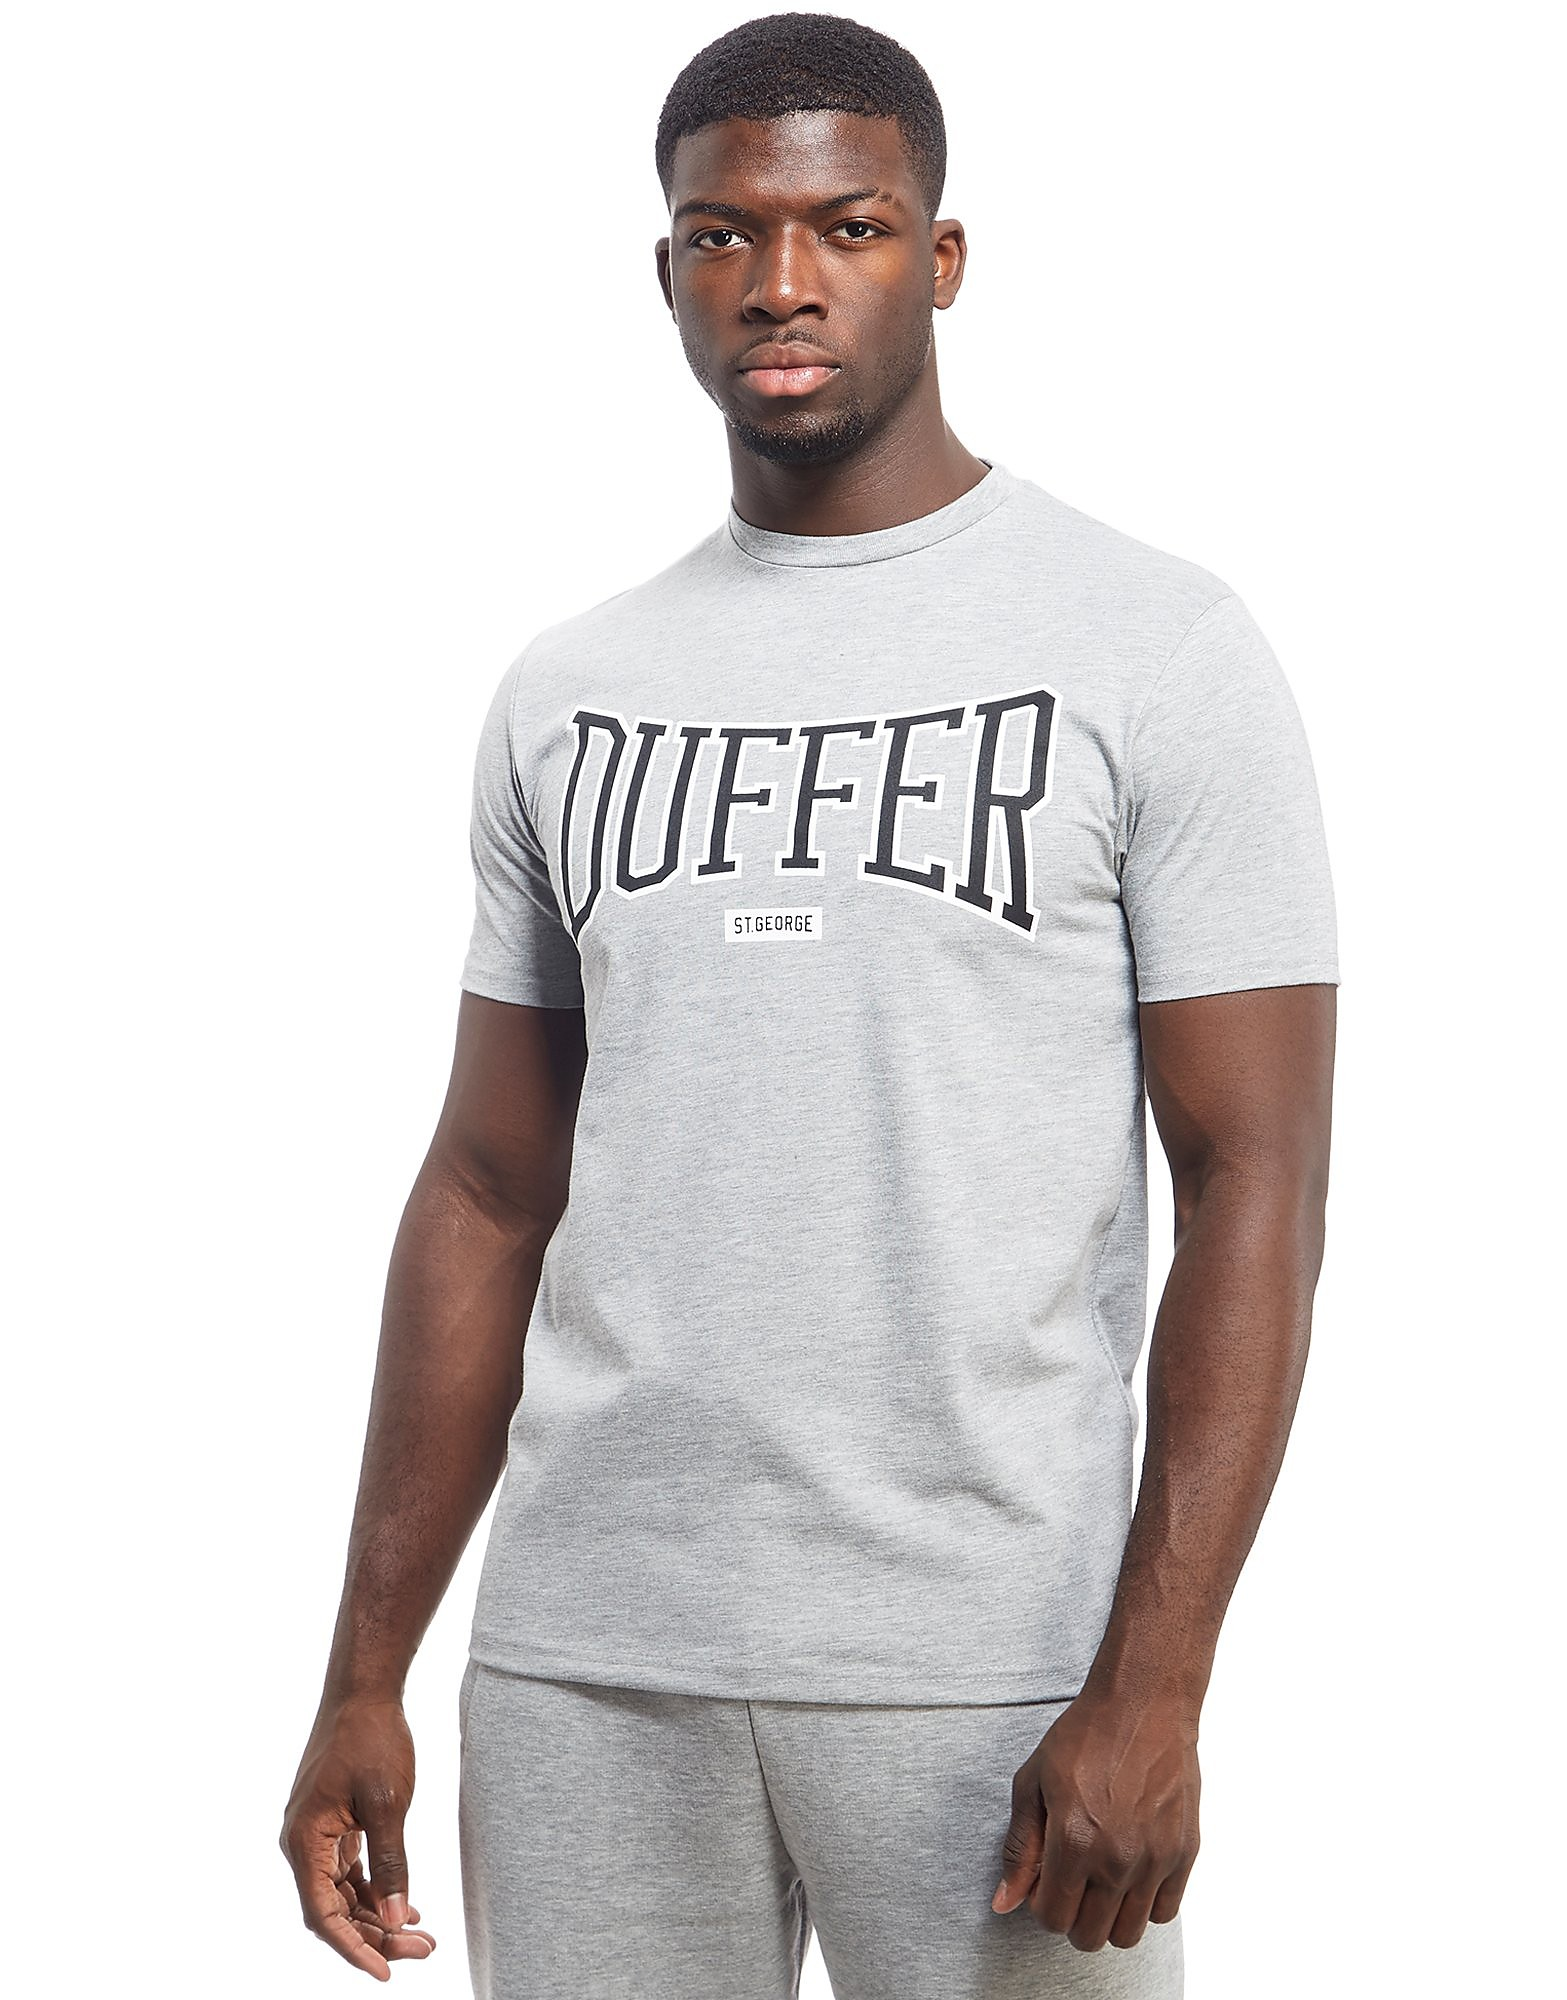 Duffer of St George Blenheim T-Shirt